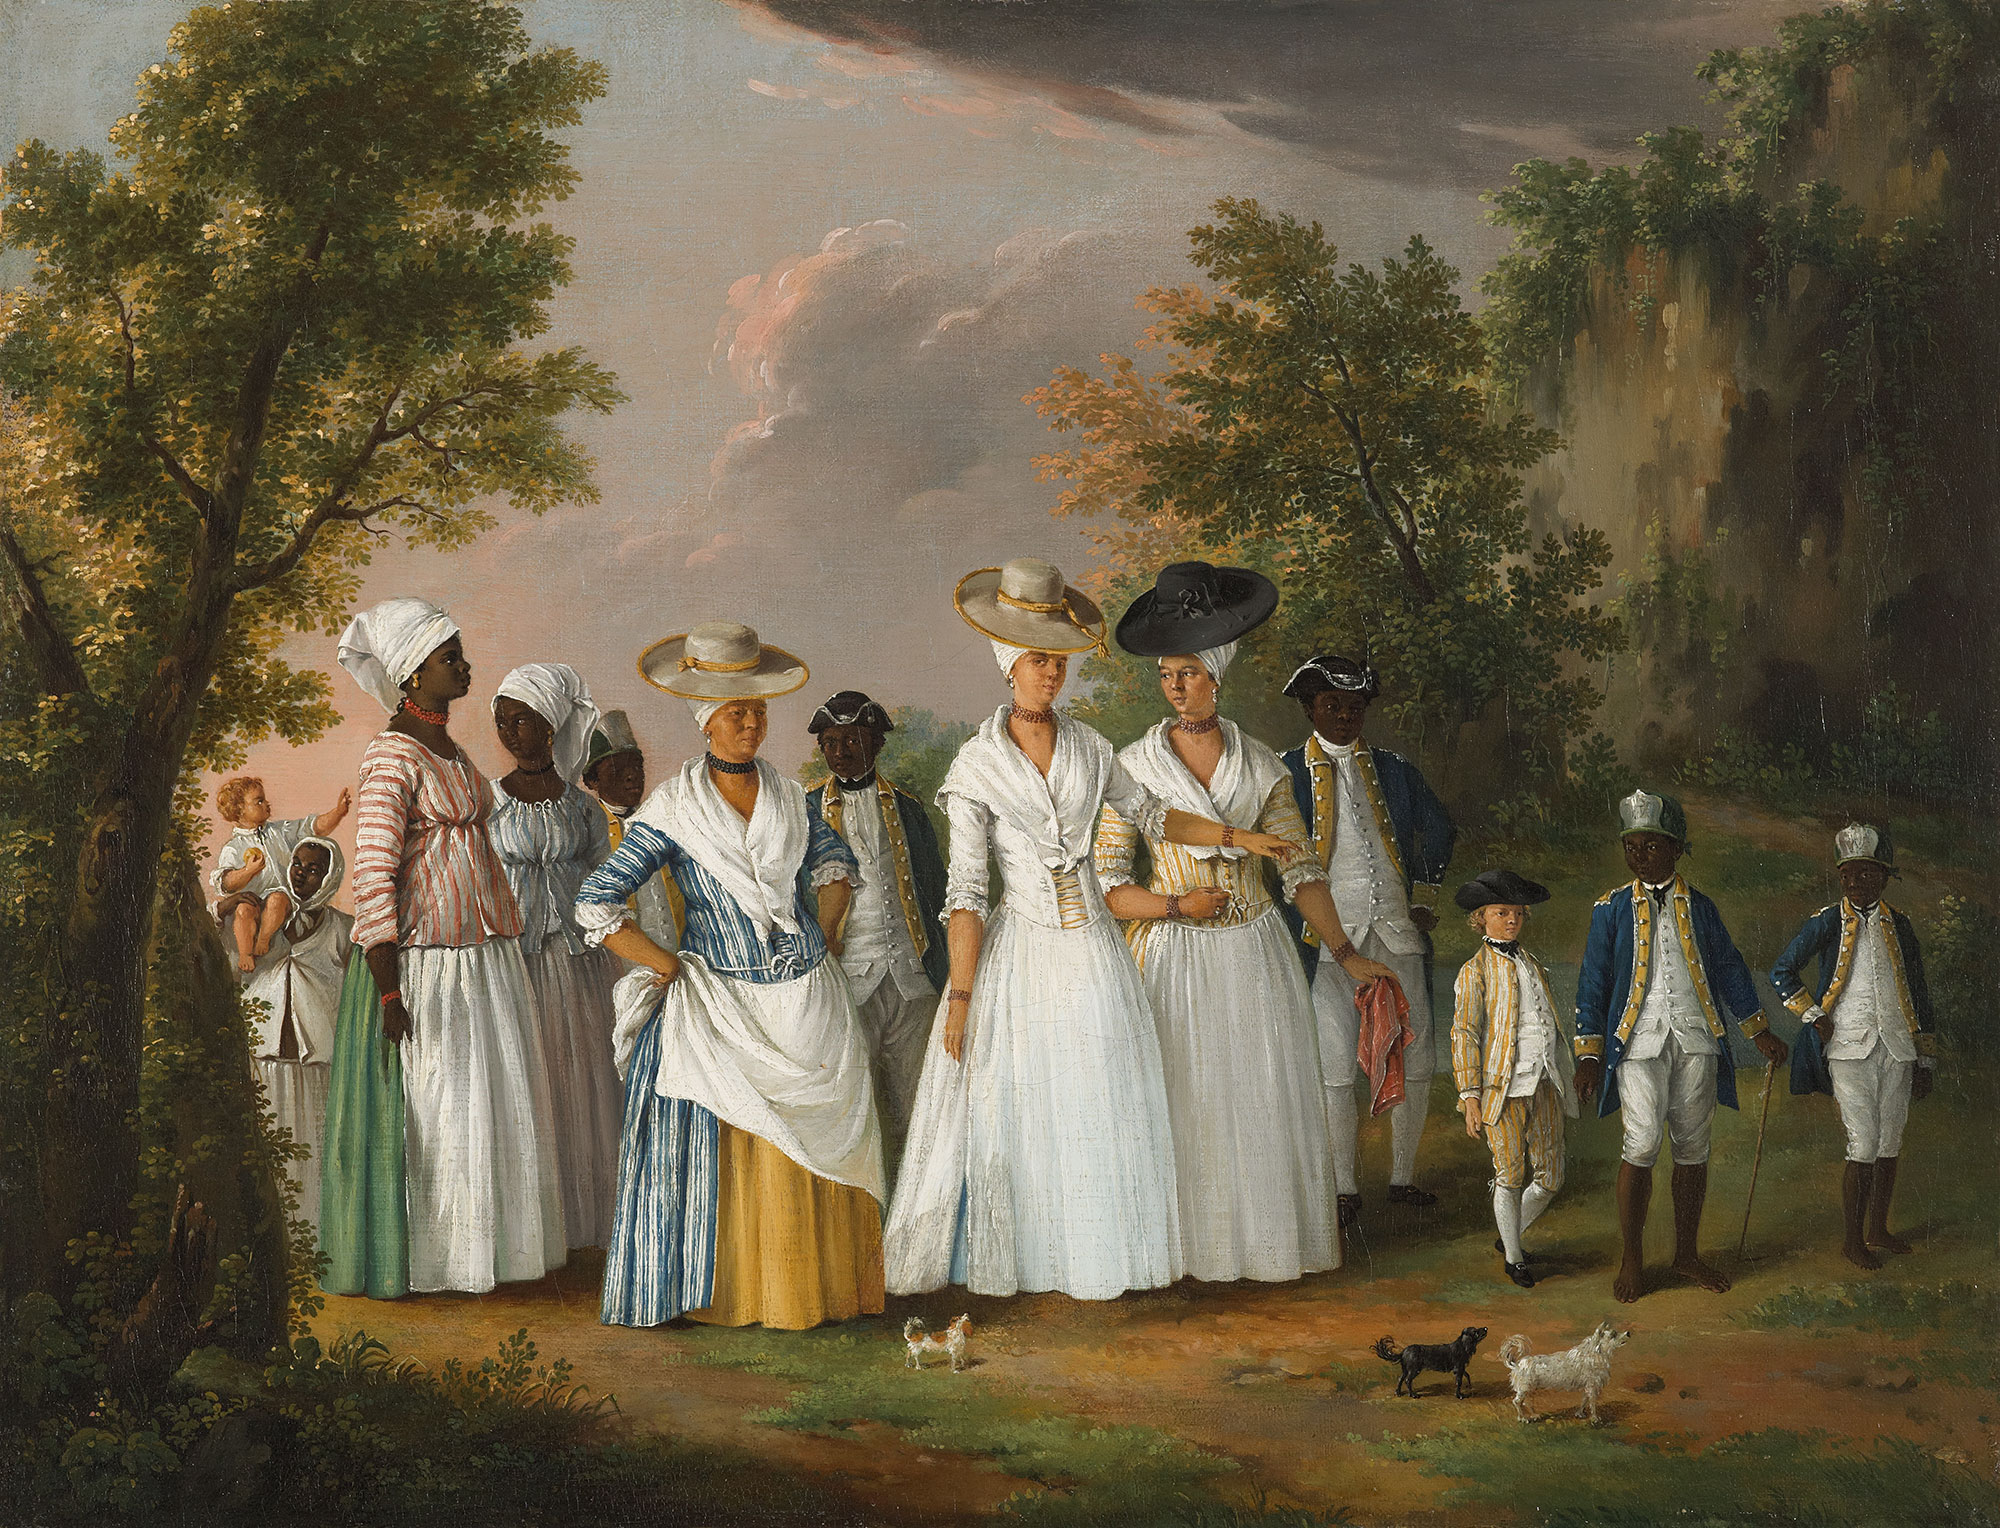 <p>Agostino Brunias:  Free Women of Color with Their Children and Servants in a Landscape, ca. 1770–1796.</p>